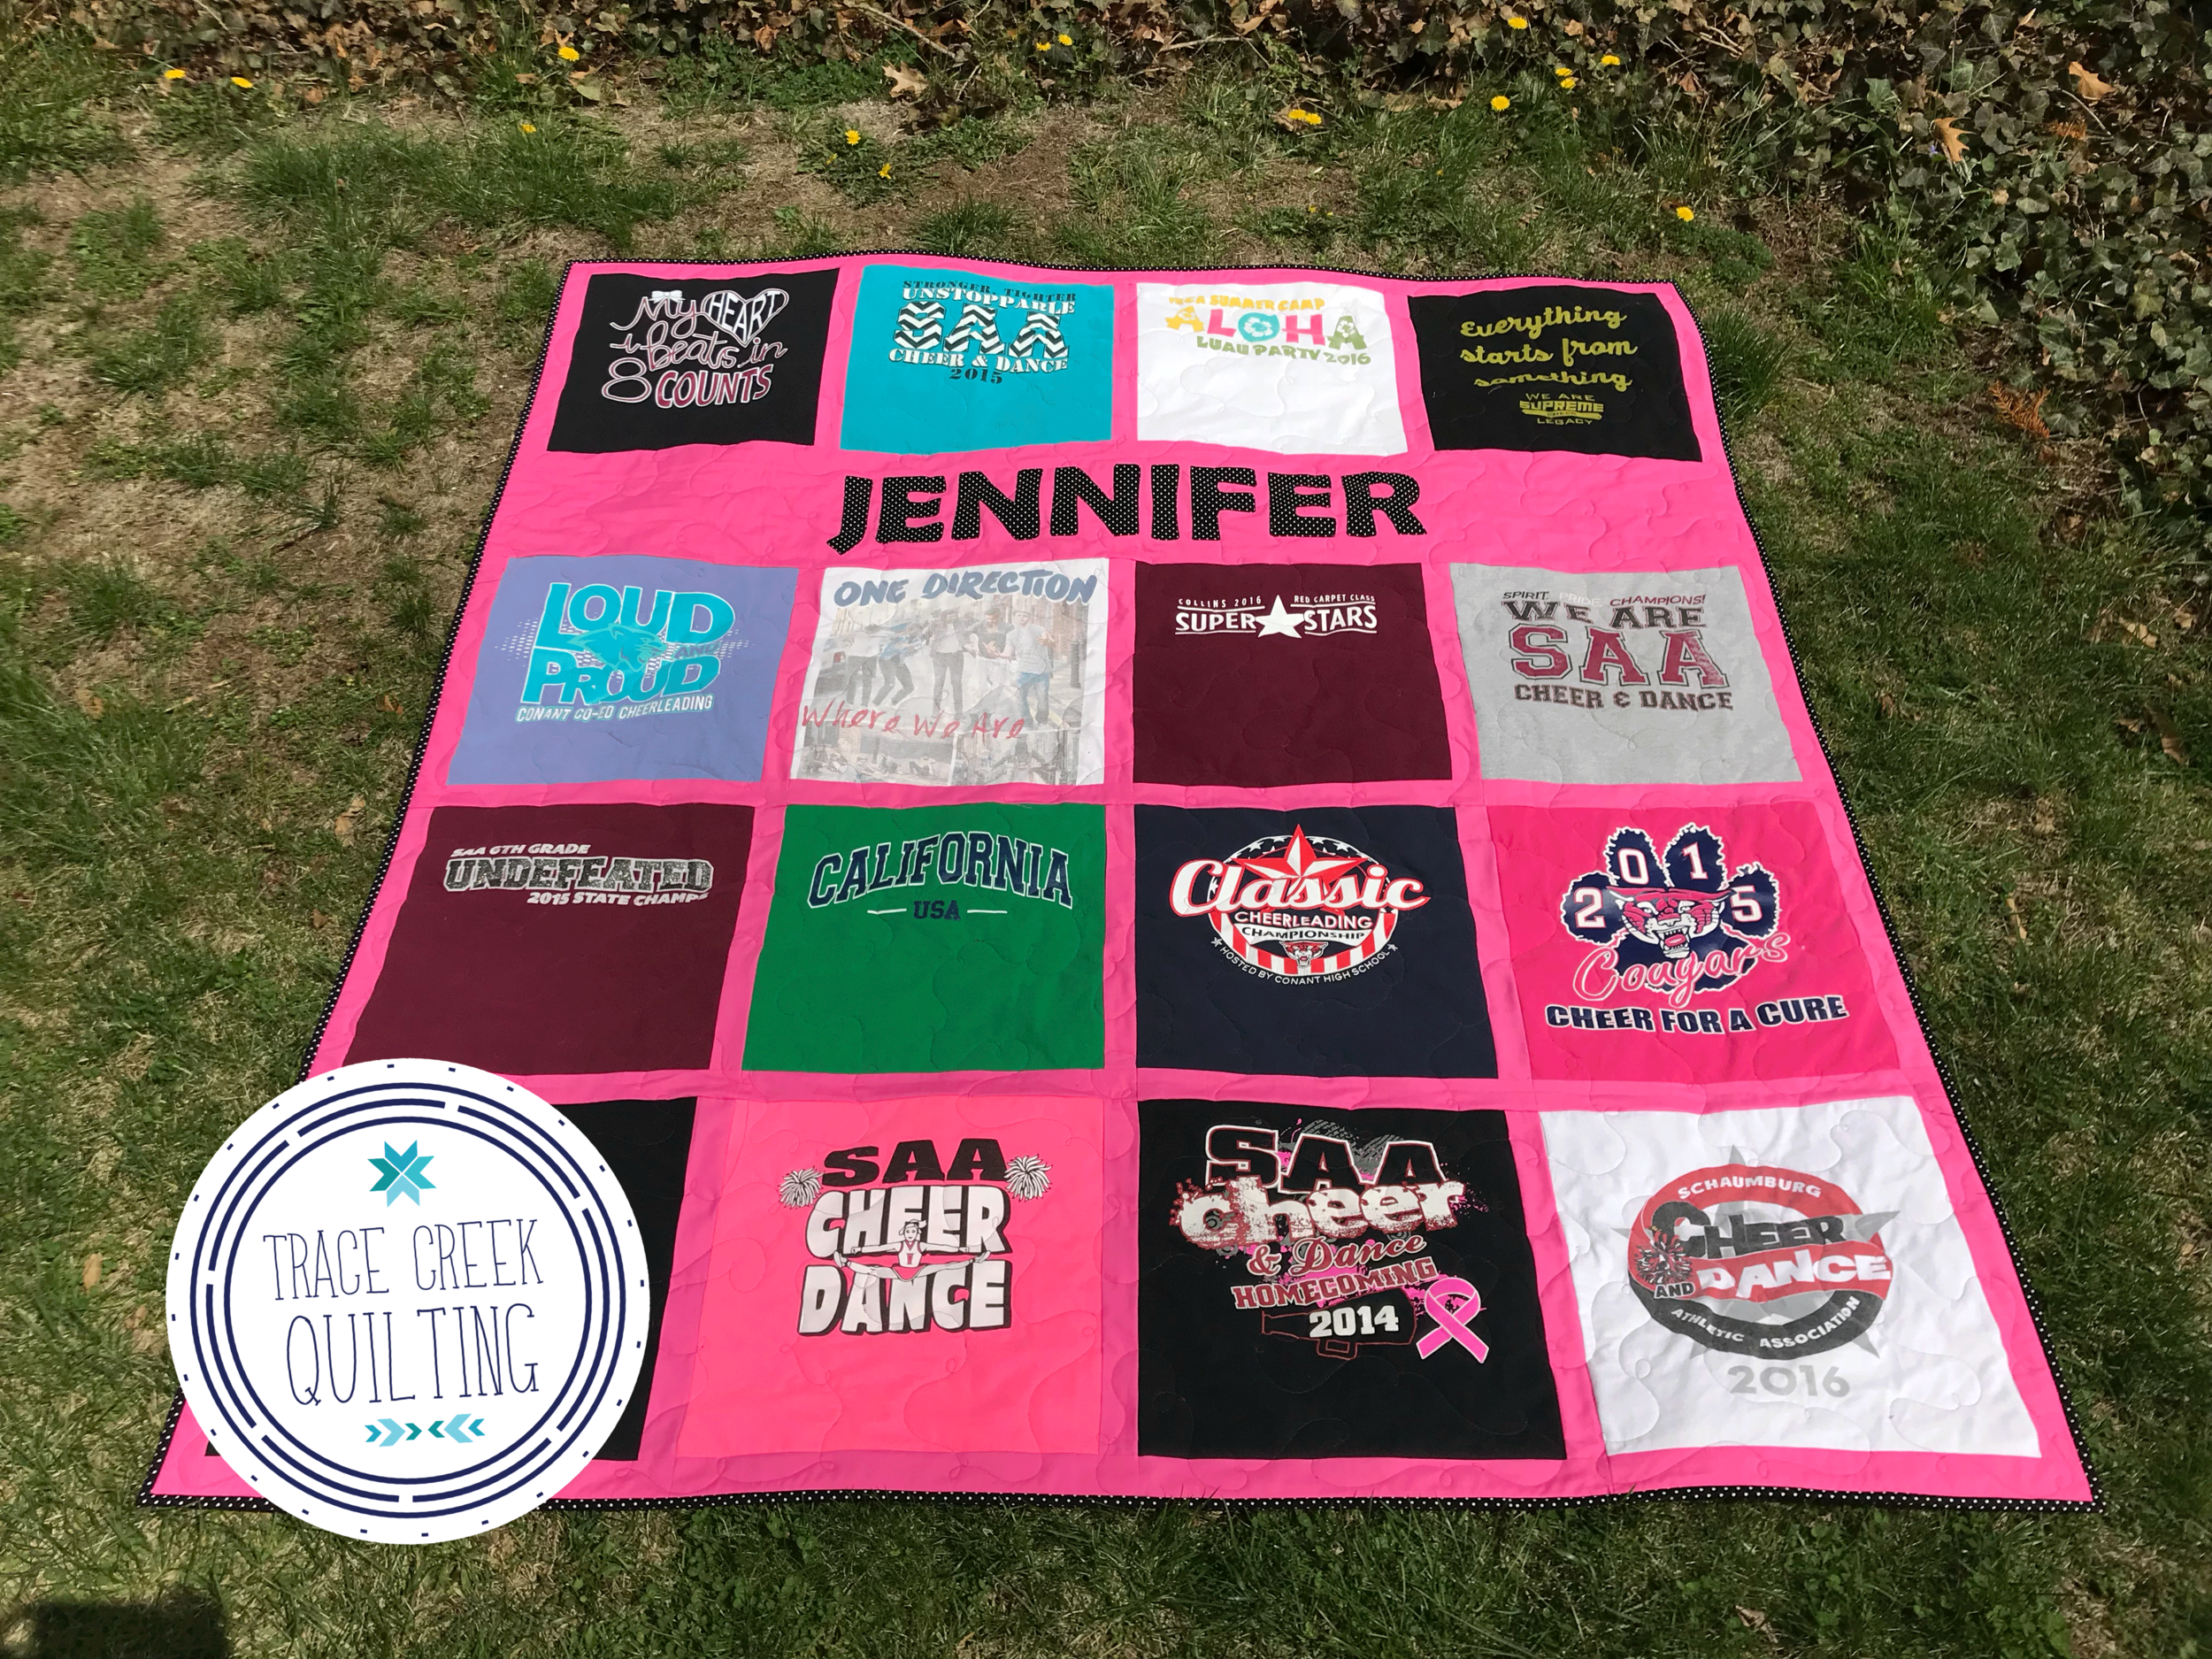 TShirt-Quilt-Trace-Creek-Quilting-010.png